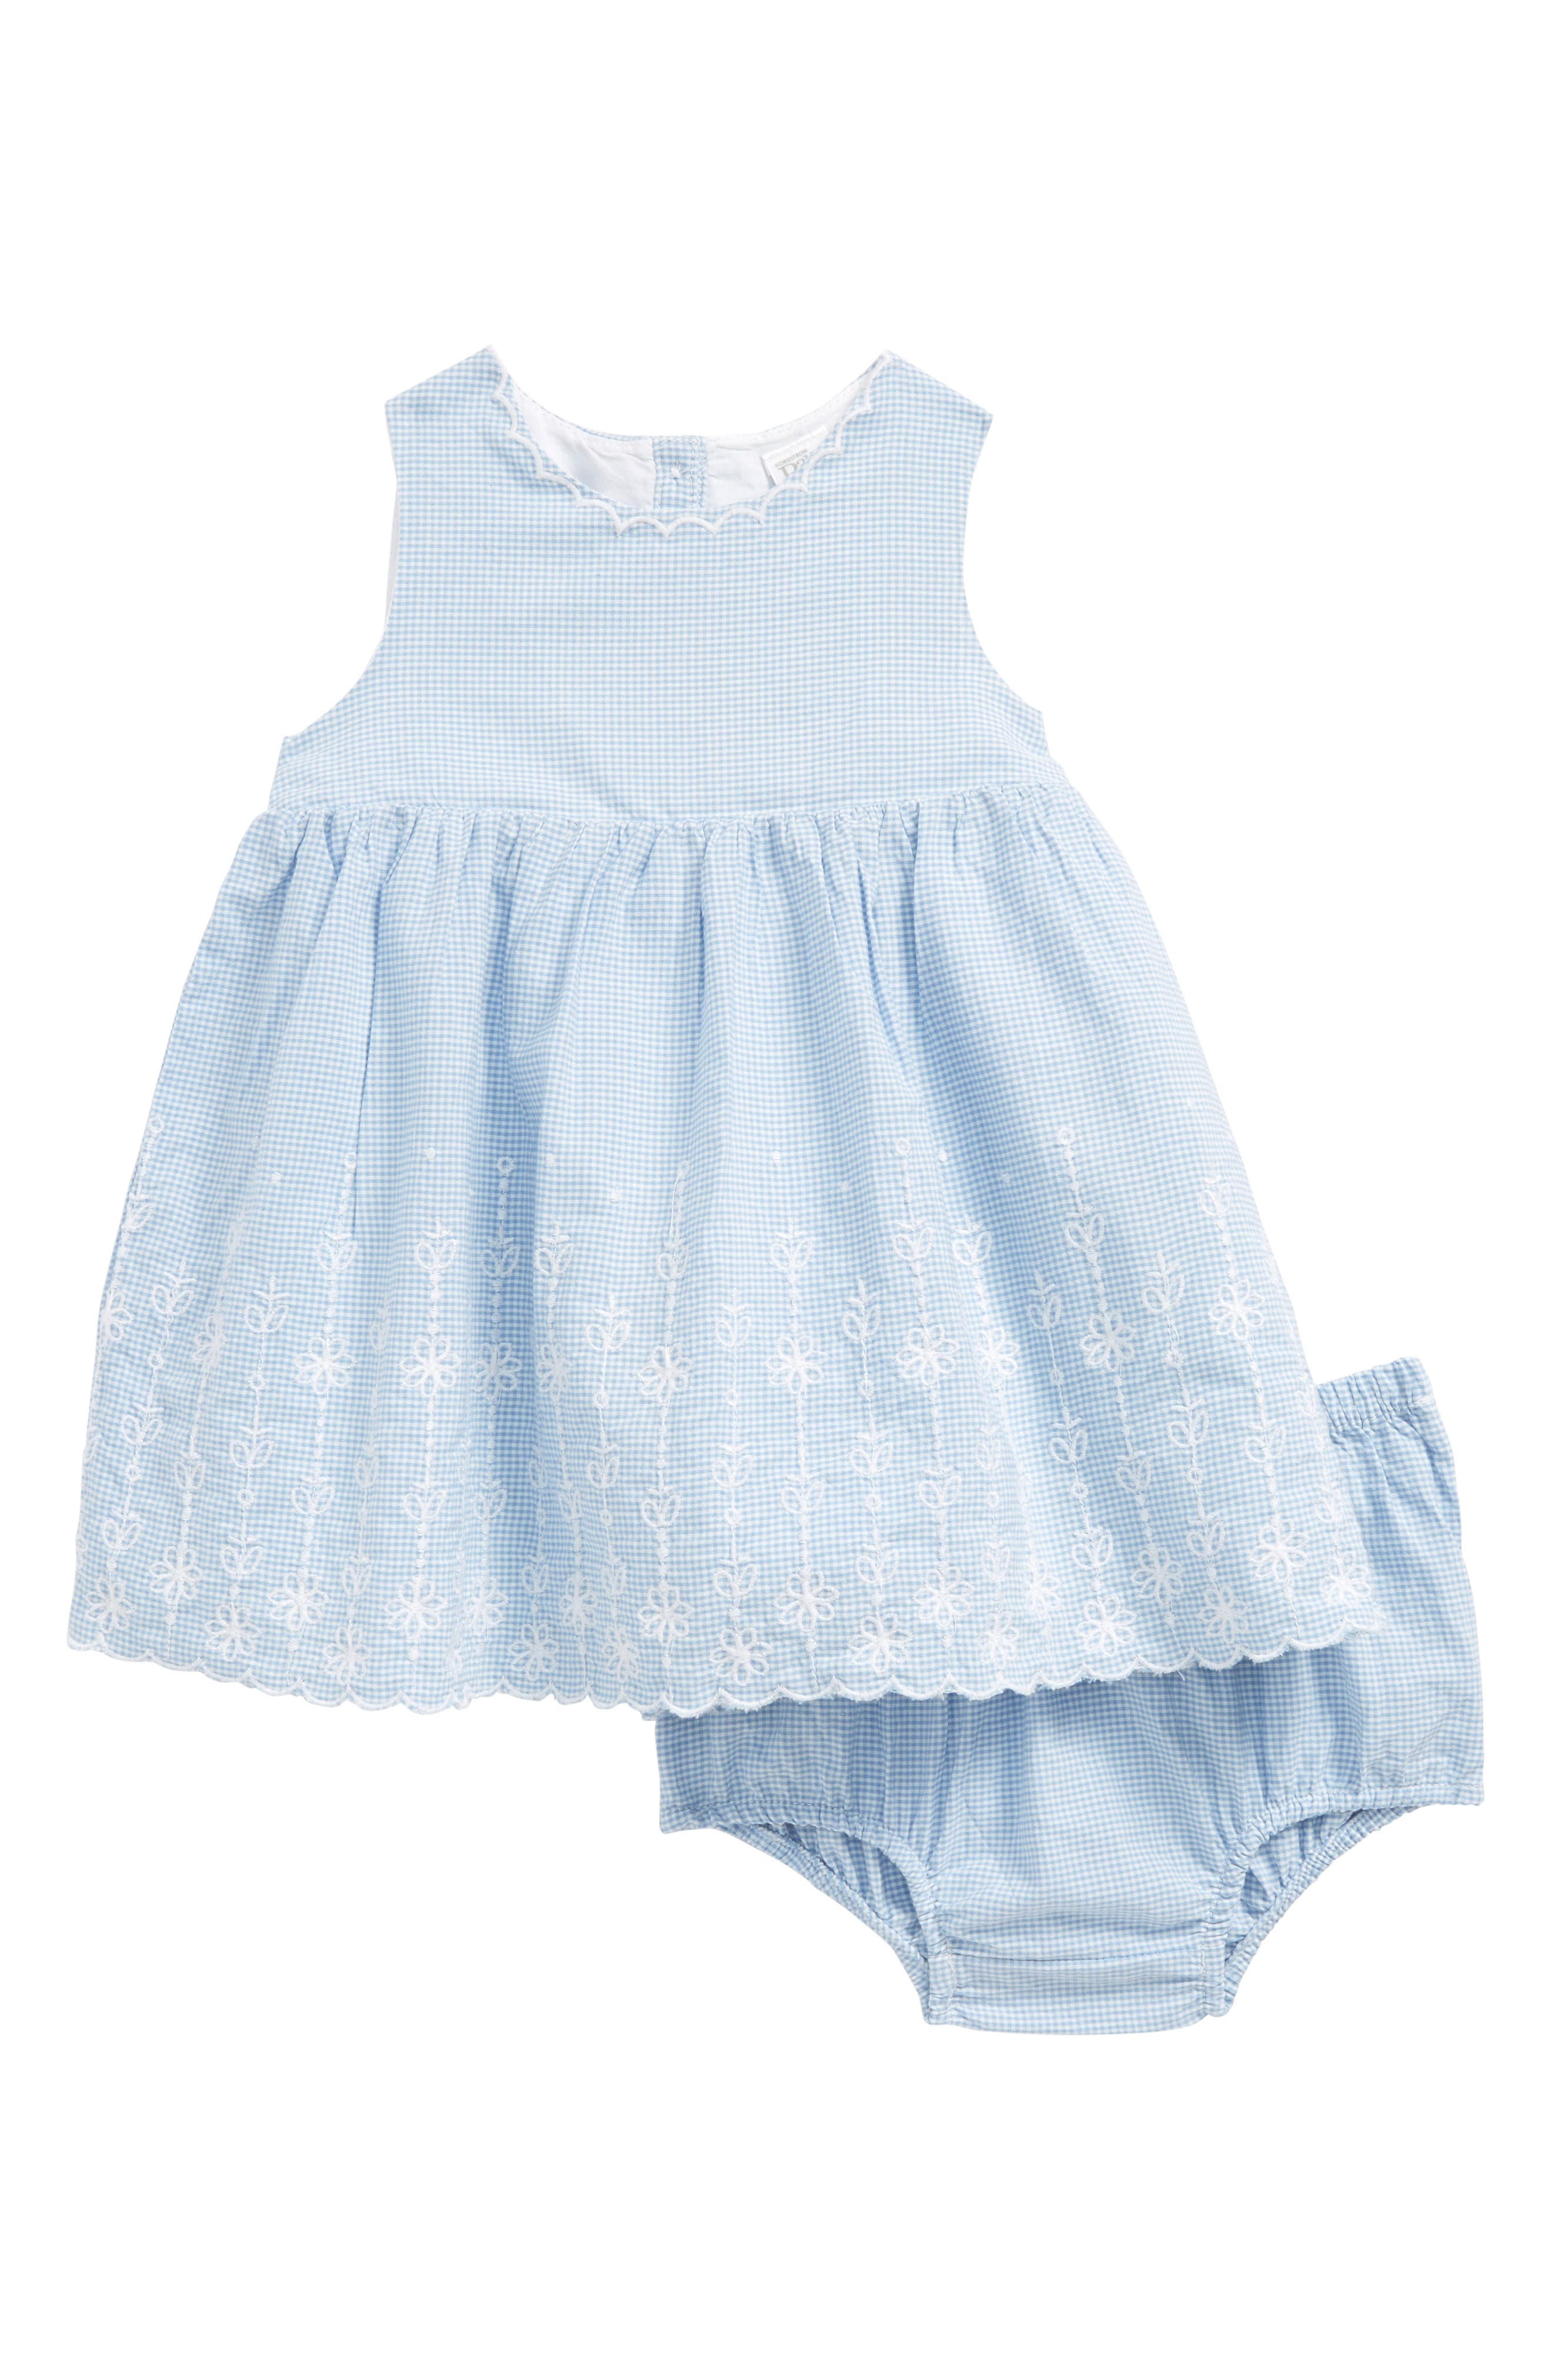 NORDSTROM BABY, Embroidered Mini Check Dress, Main thumbnail 1, color, WHITE- BLUE MINI CHECK